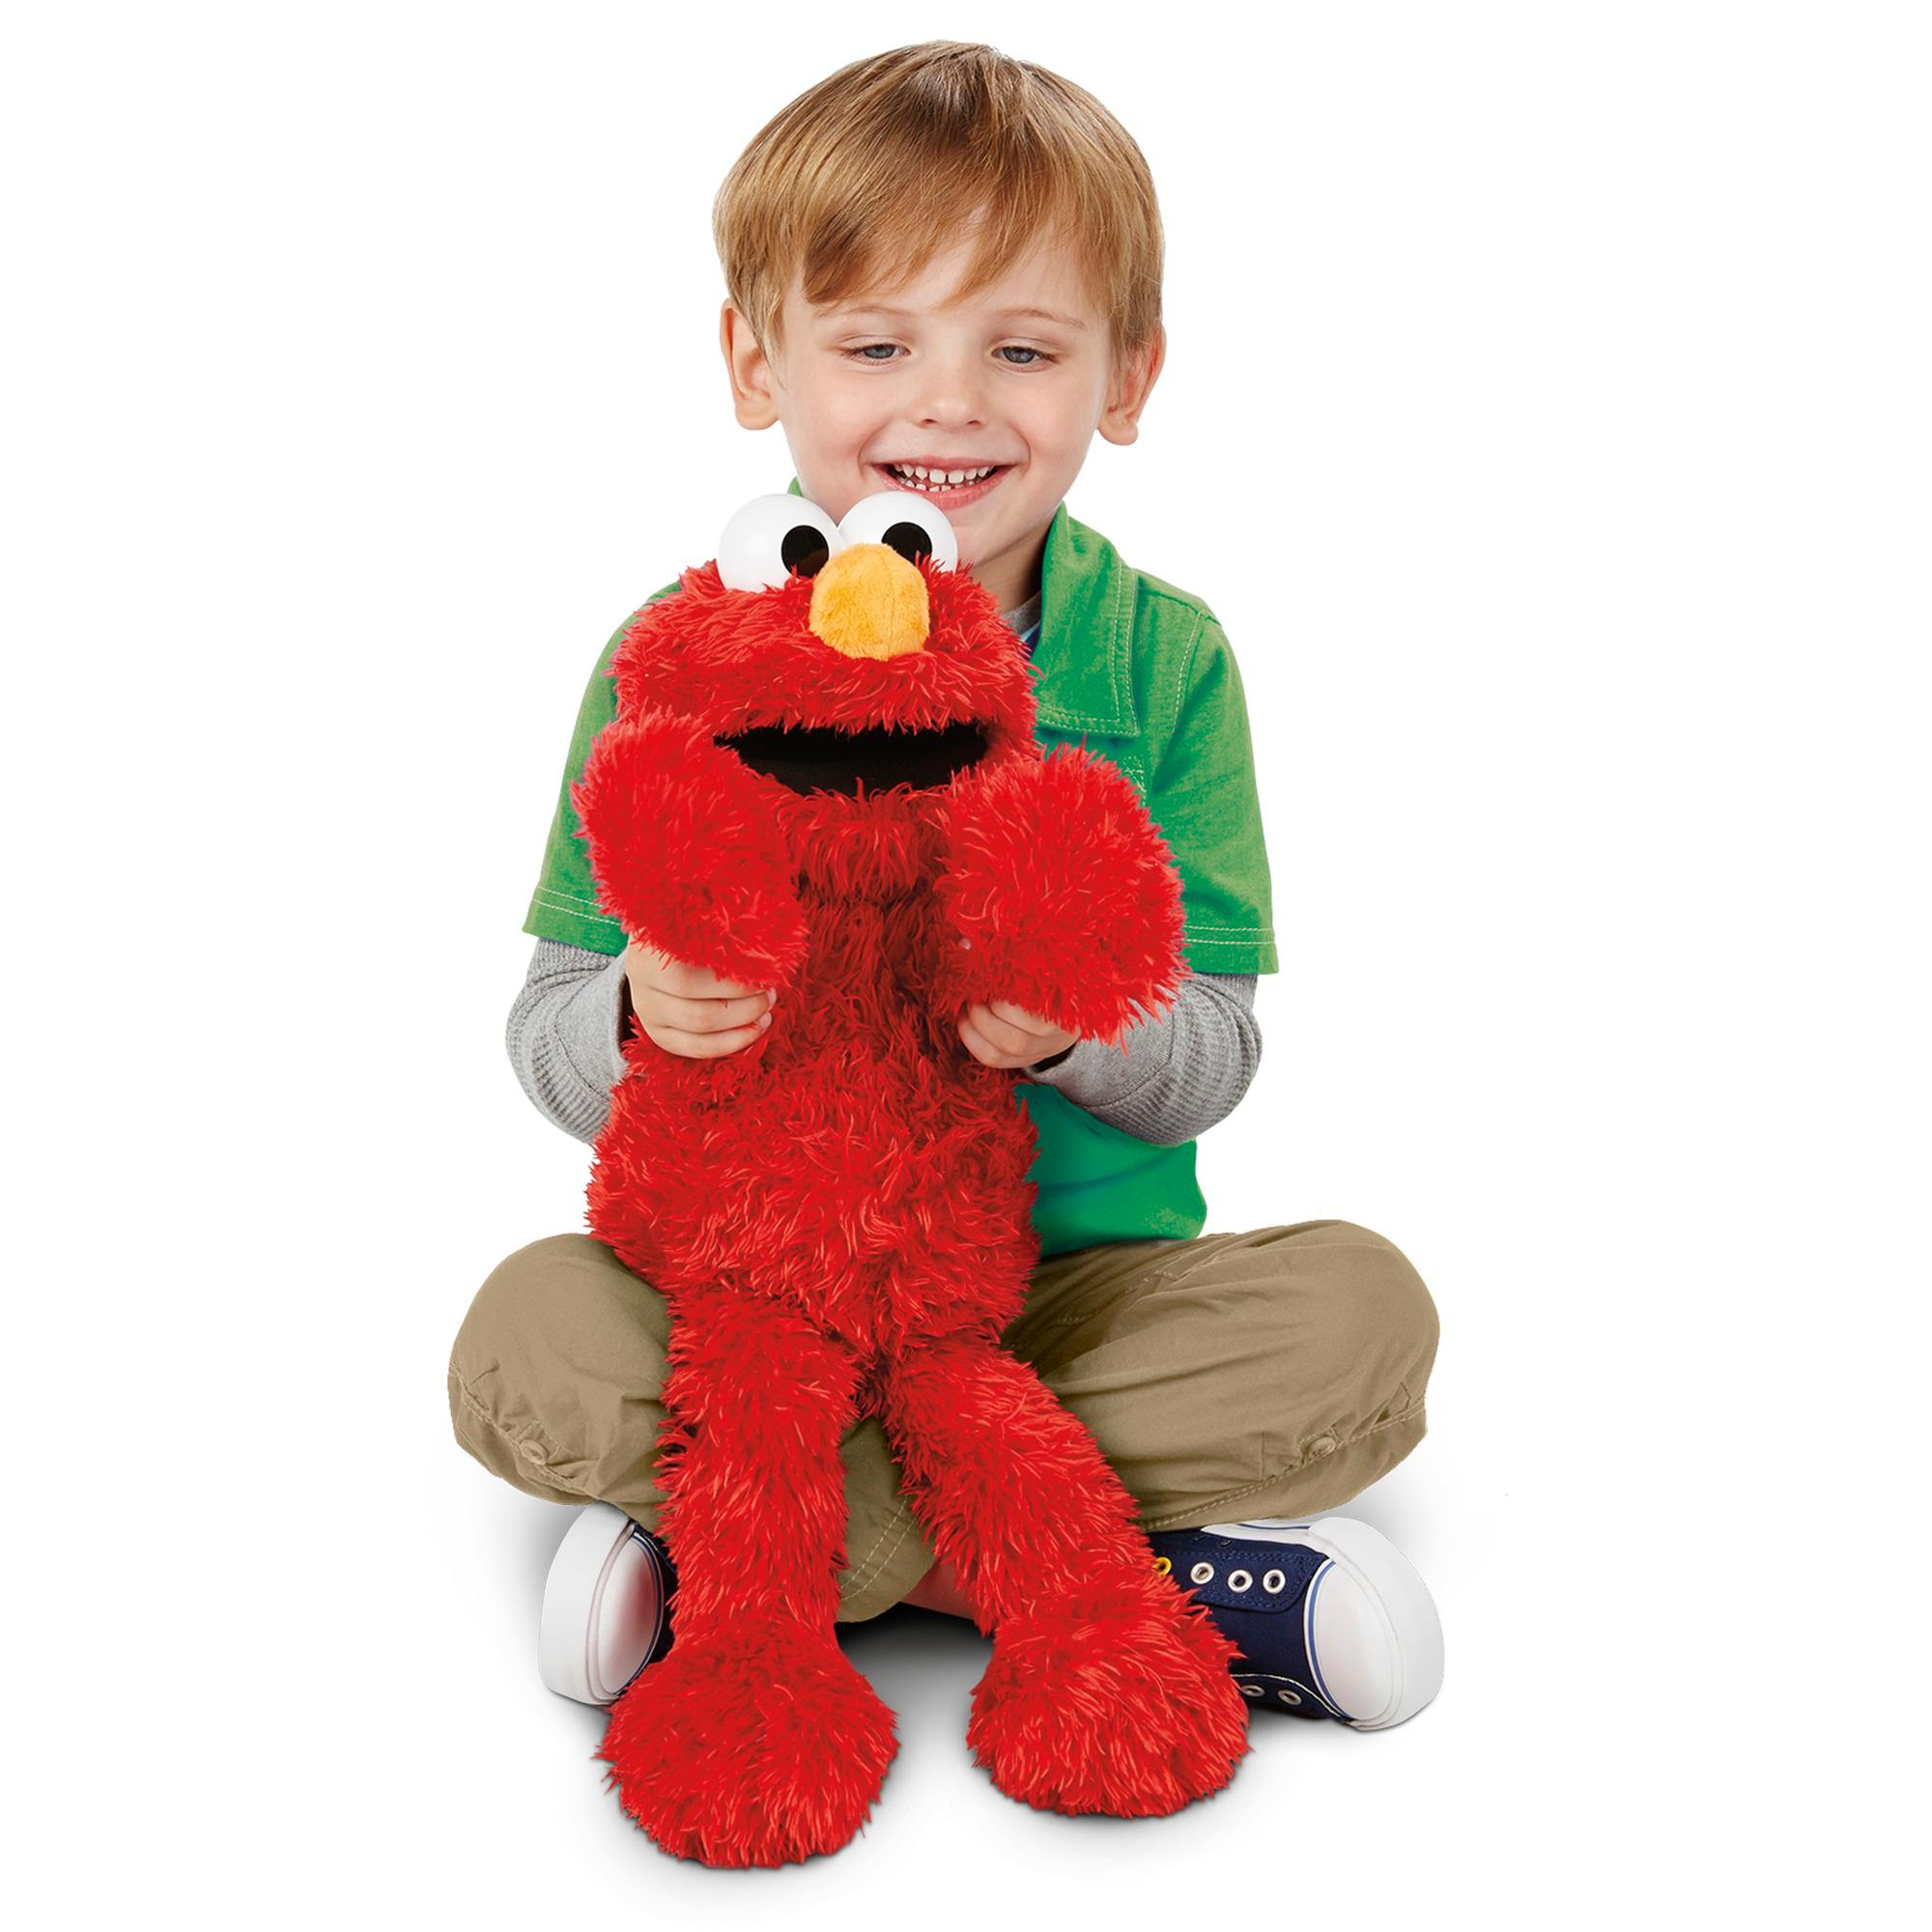 play games with elmo reviews